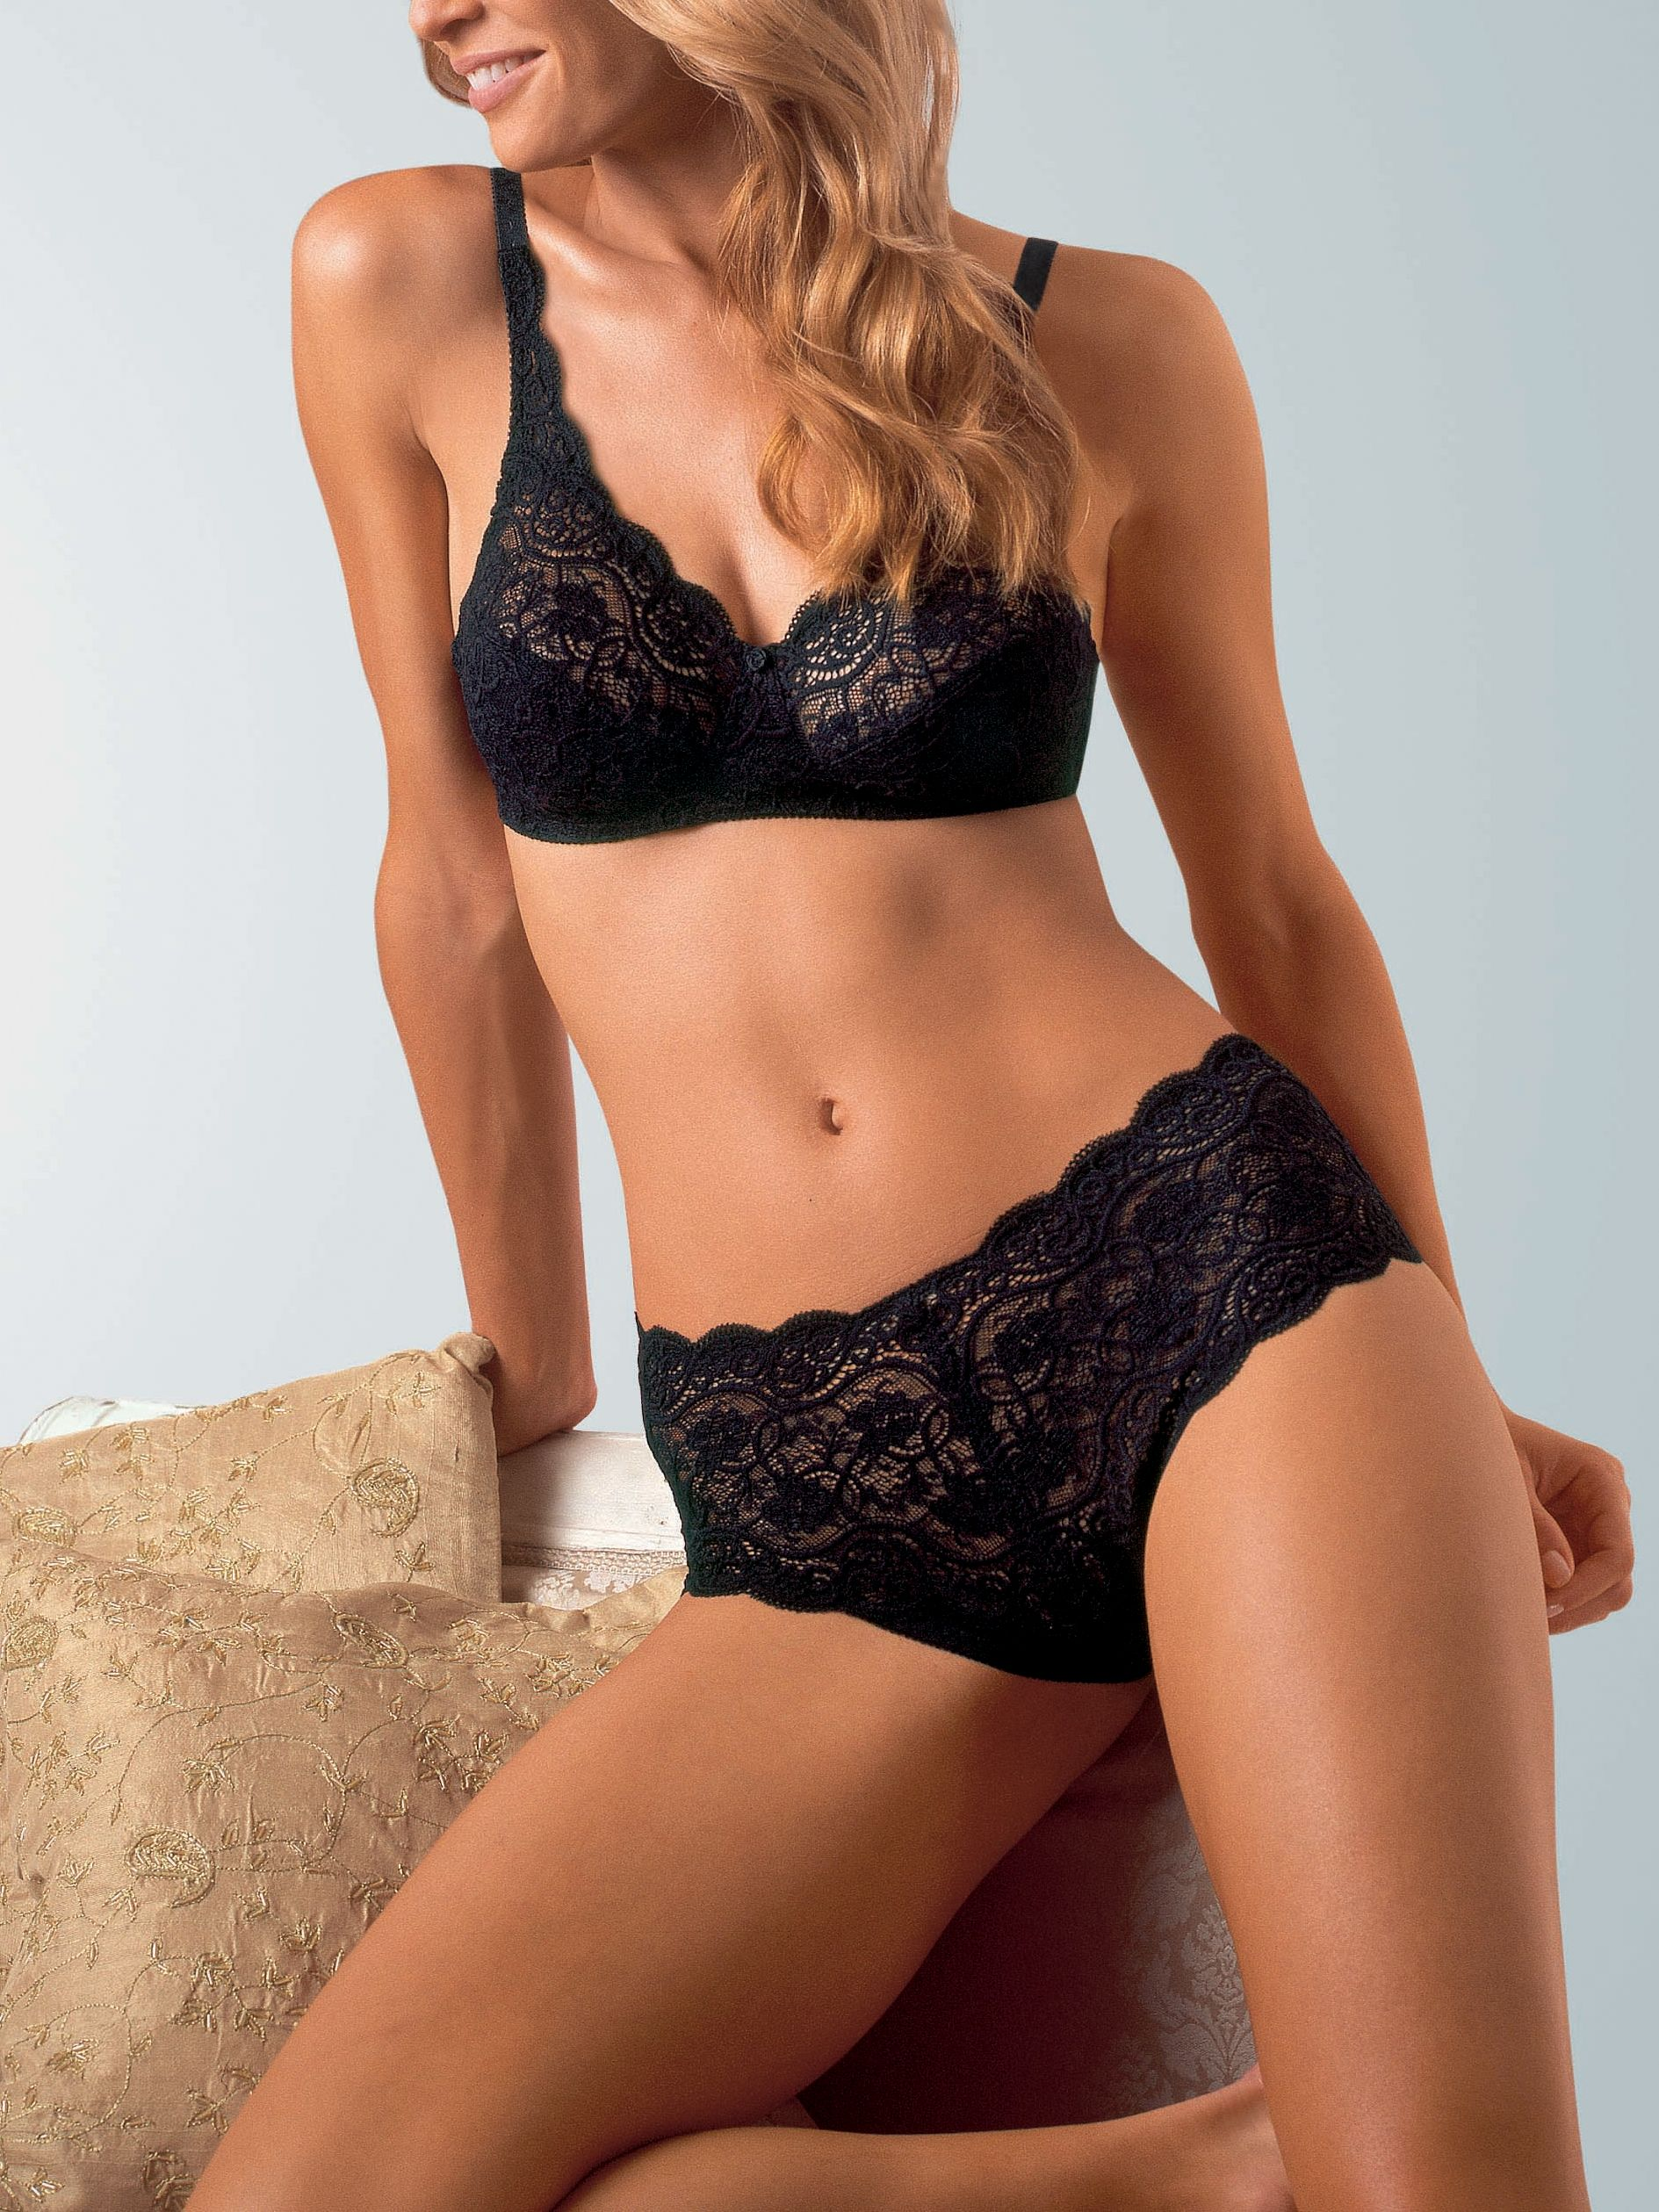 Amourette 300 Lingerie Collection